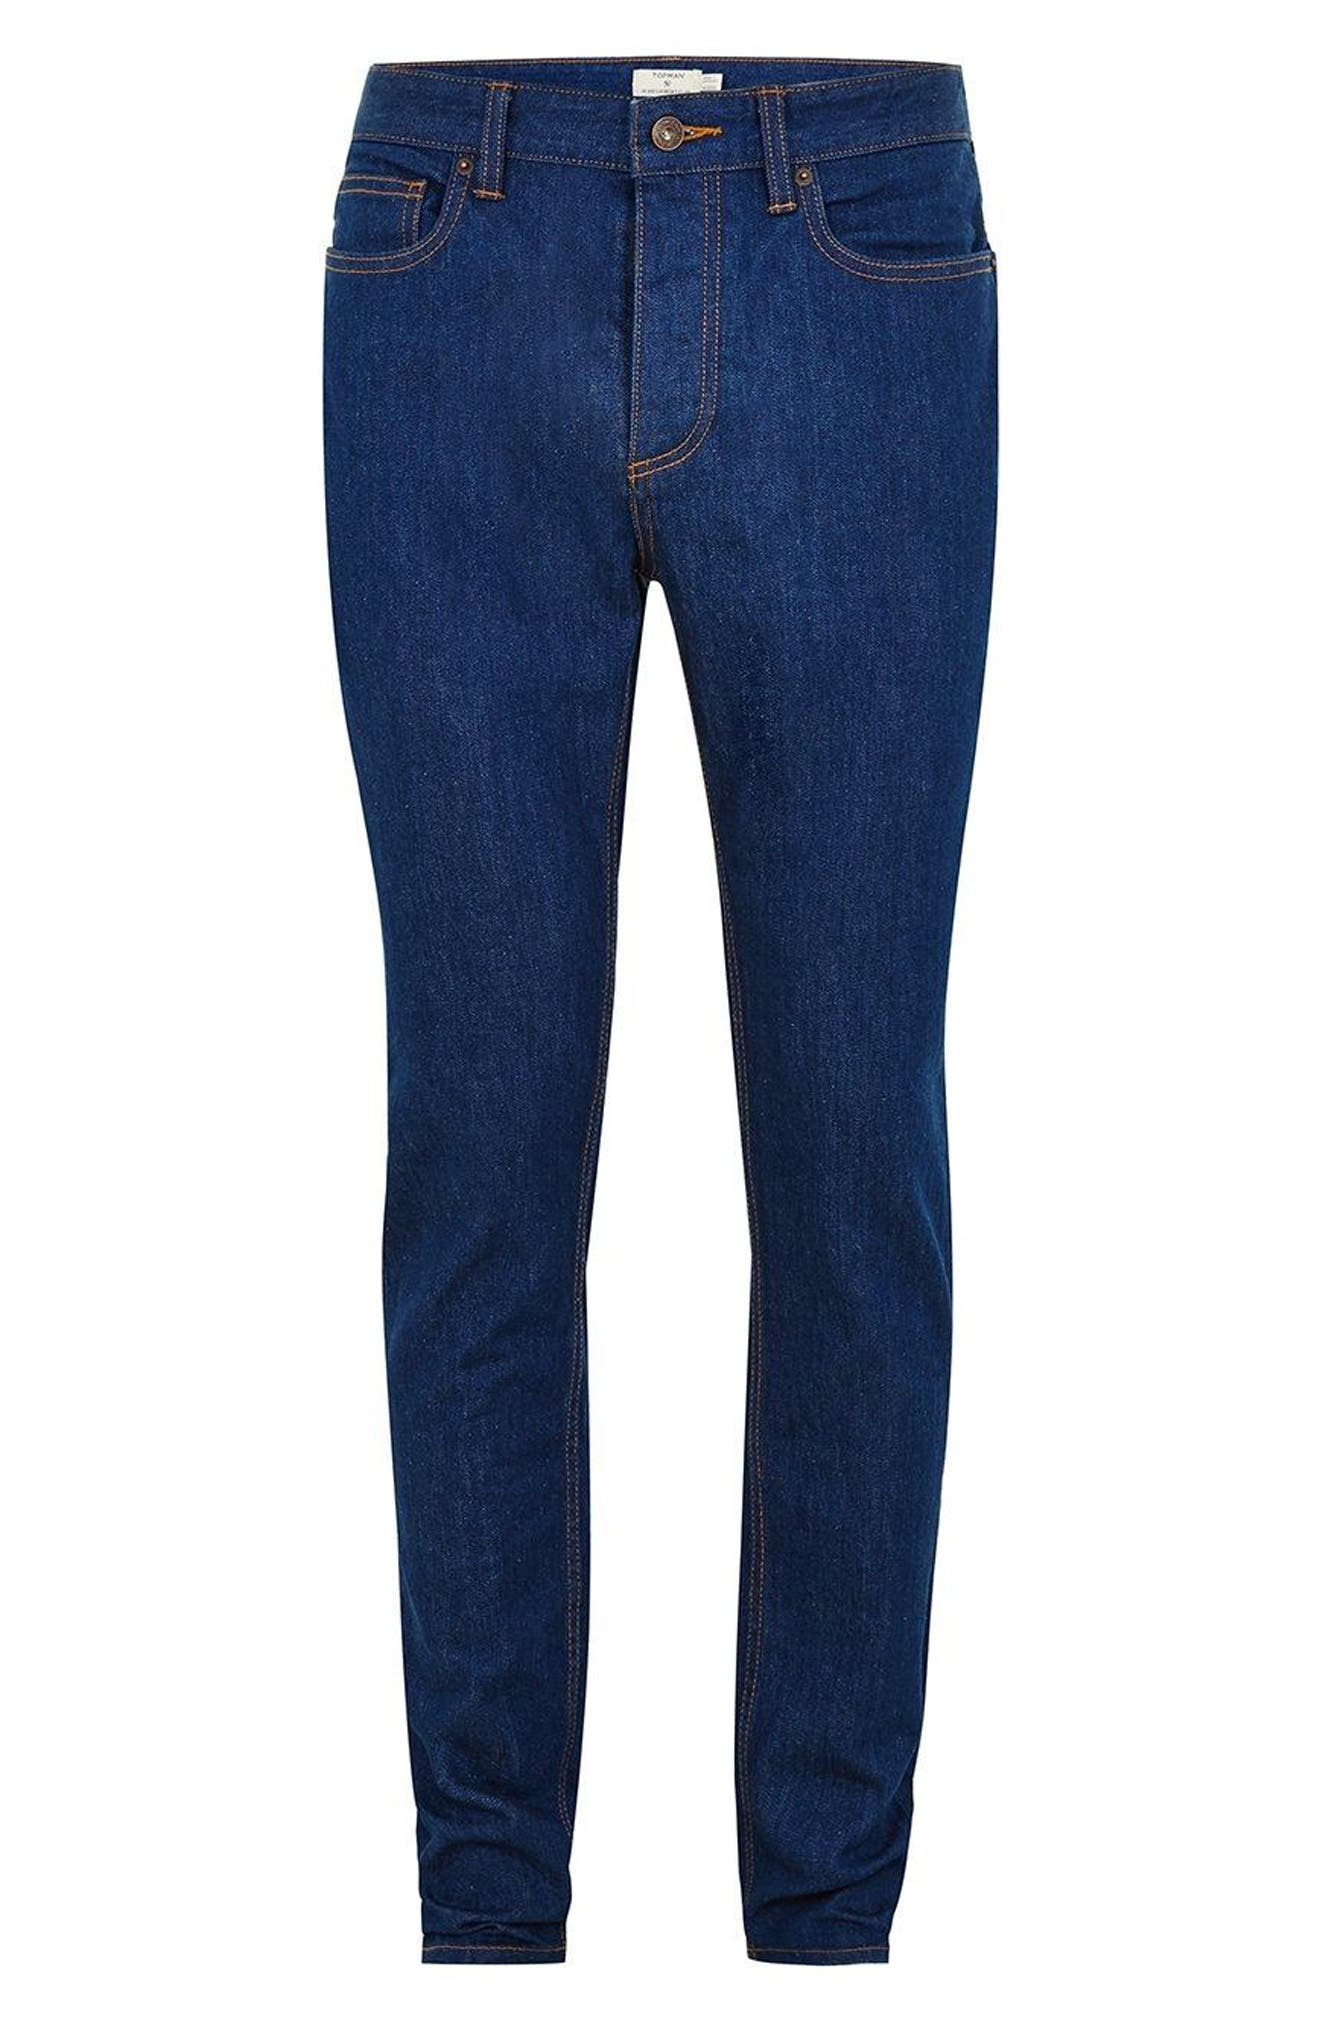 Stretch Skinny Fit Jeans,                             Alternate thumbnail 4, color,                             400